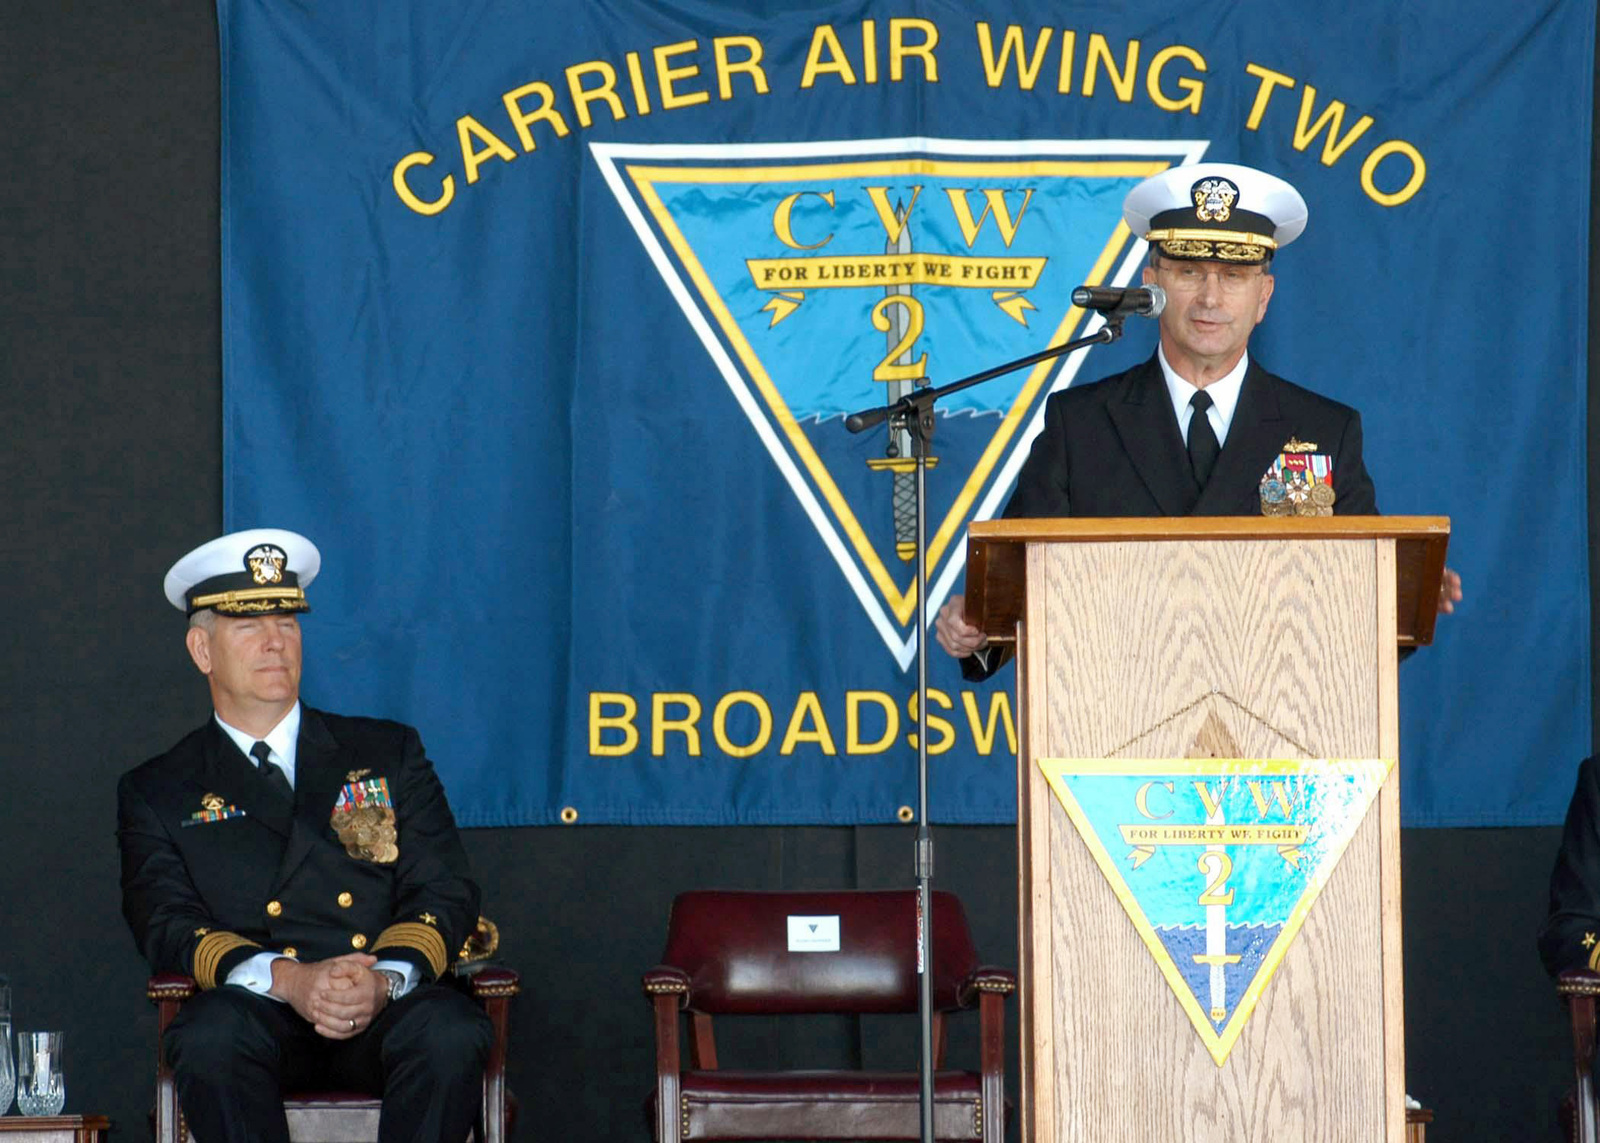 US Navy (USN) Assist Deputy of Naval Operations for Information, Plans and Strategy (NOIPS) Rear Admiral (RADM) William D. Crowder, speaks during Carrier Air Wing 2 (CVW-2) change of command ceremony at Naval Air Station (NAS) Lemoore, California (CA)